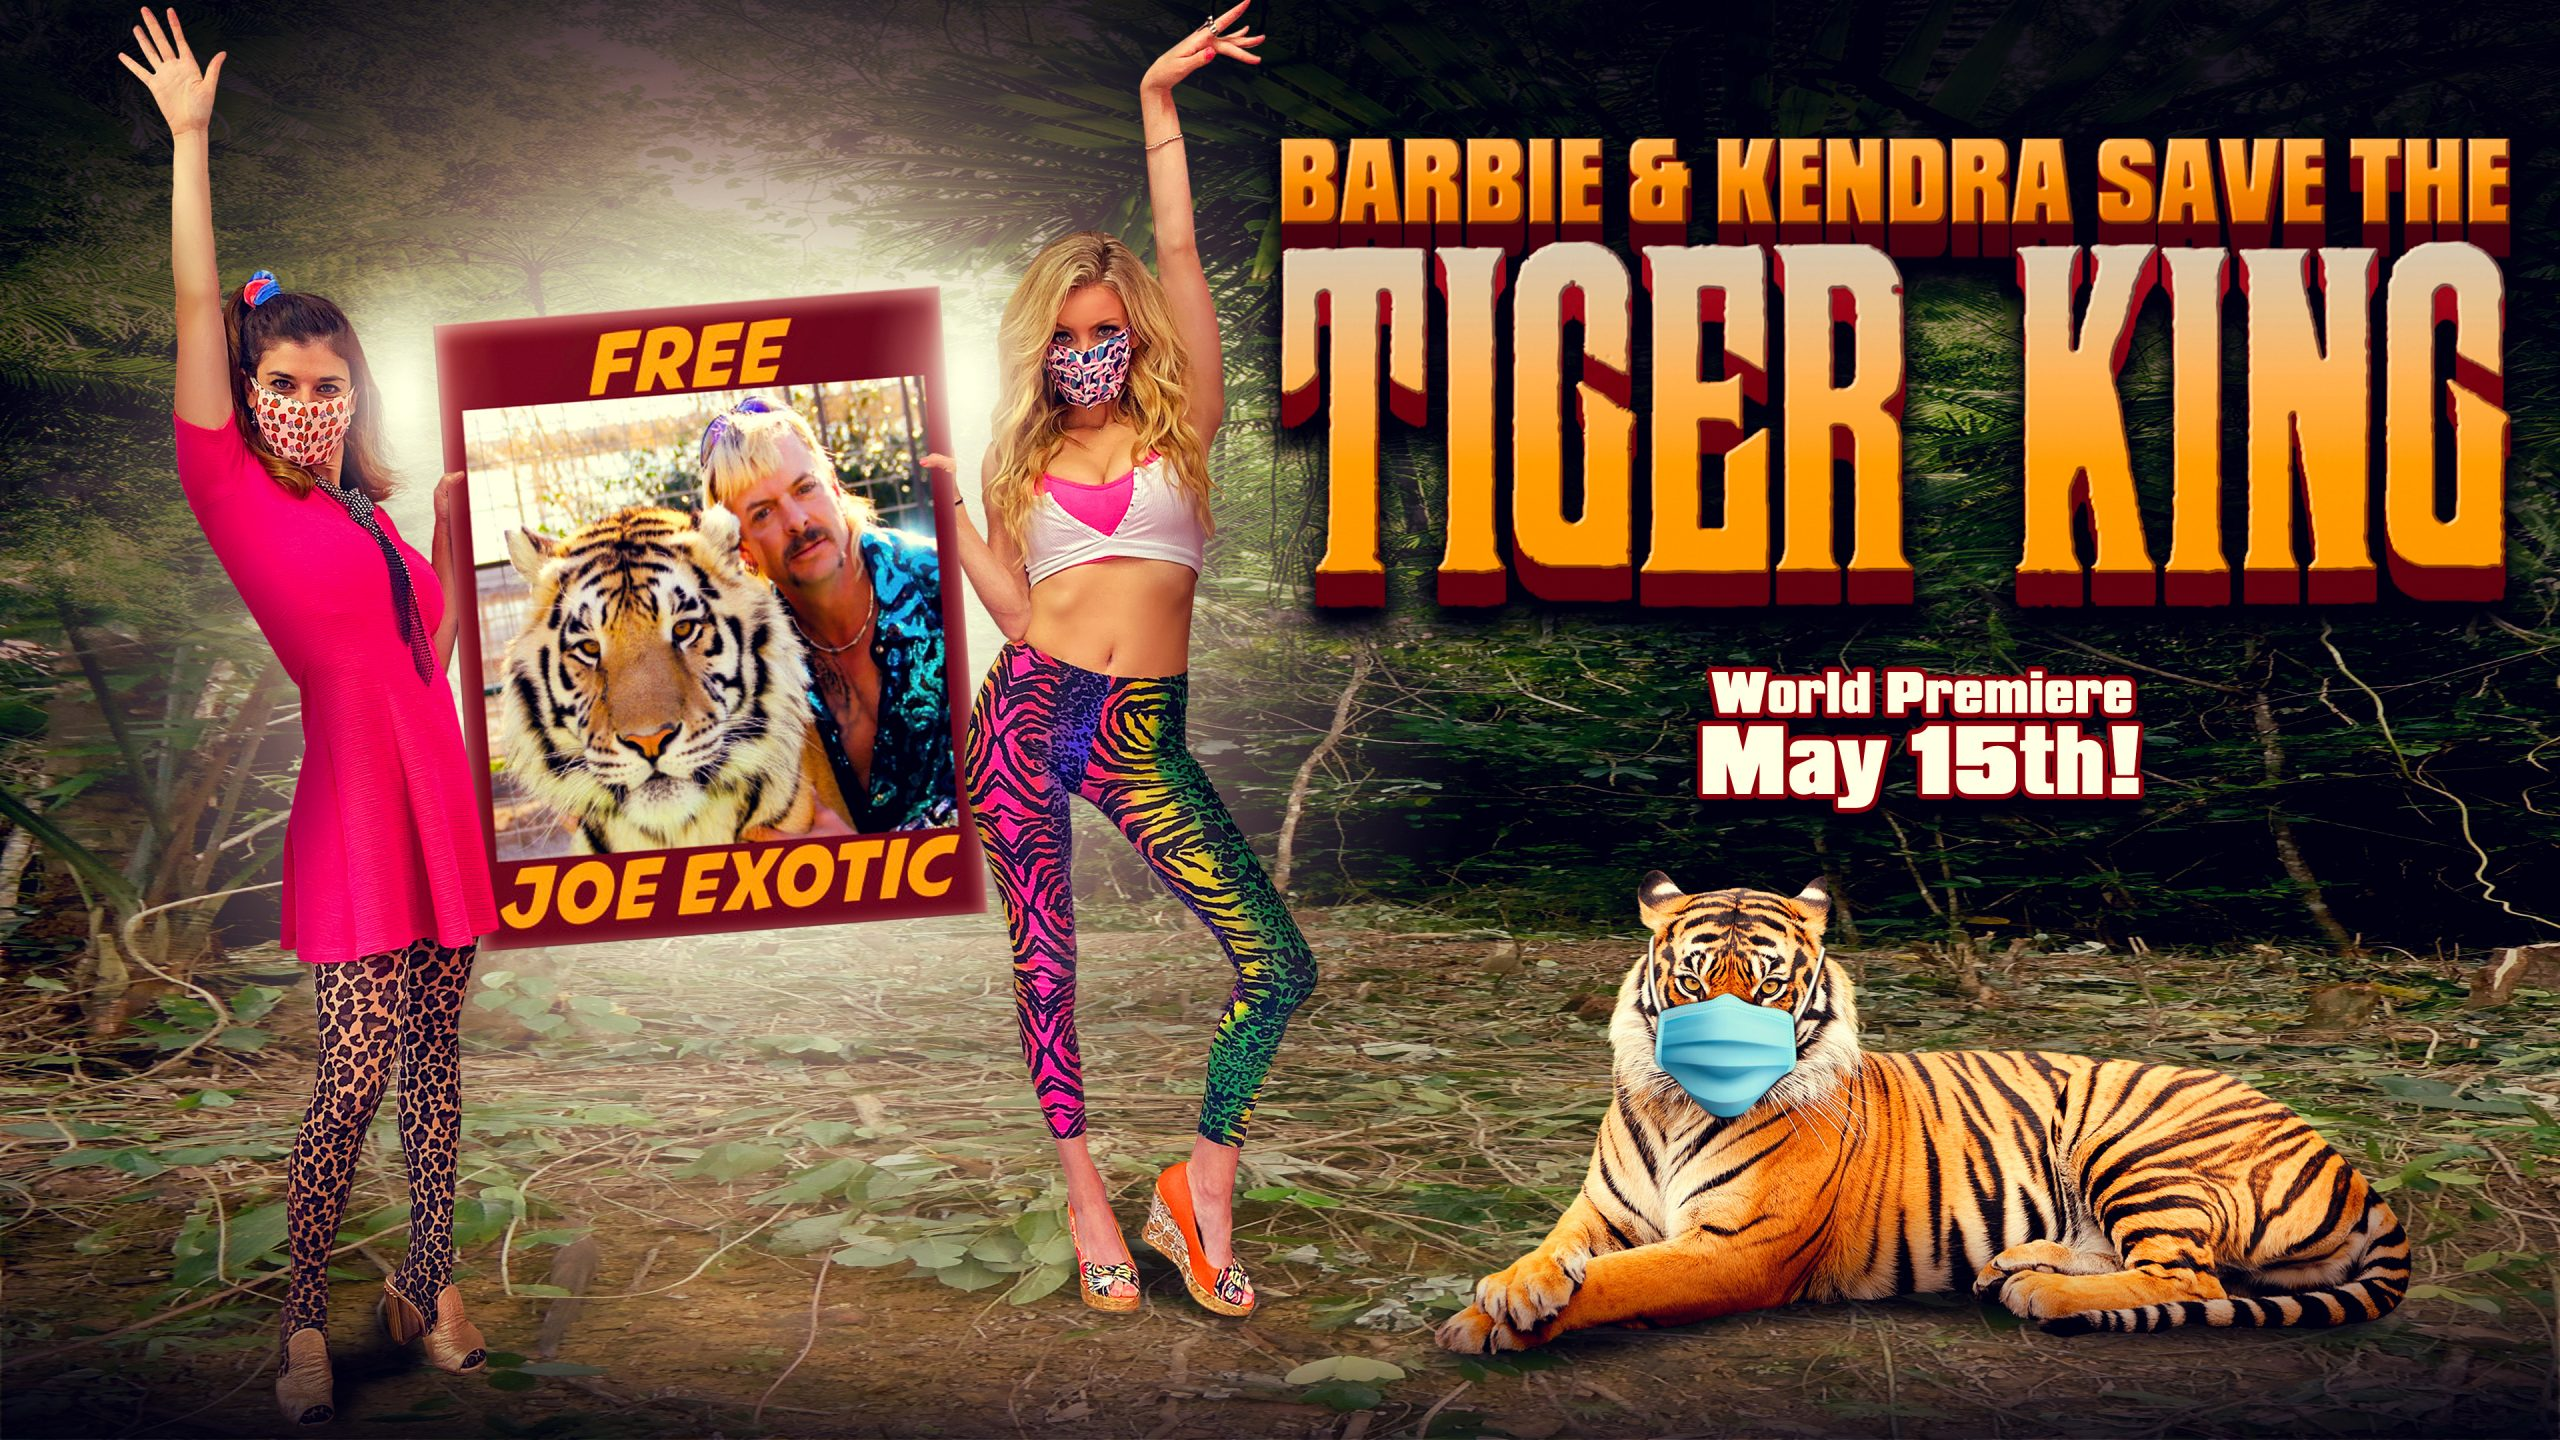 [Review] BARBIE AND KENDRA SAVE THE TIGER KING